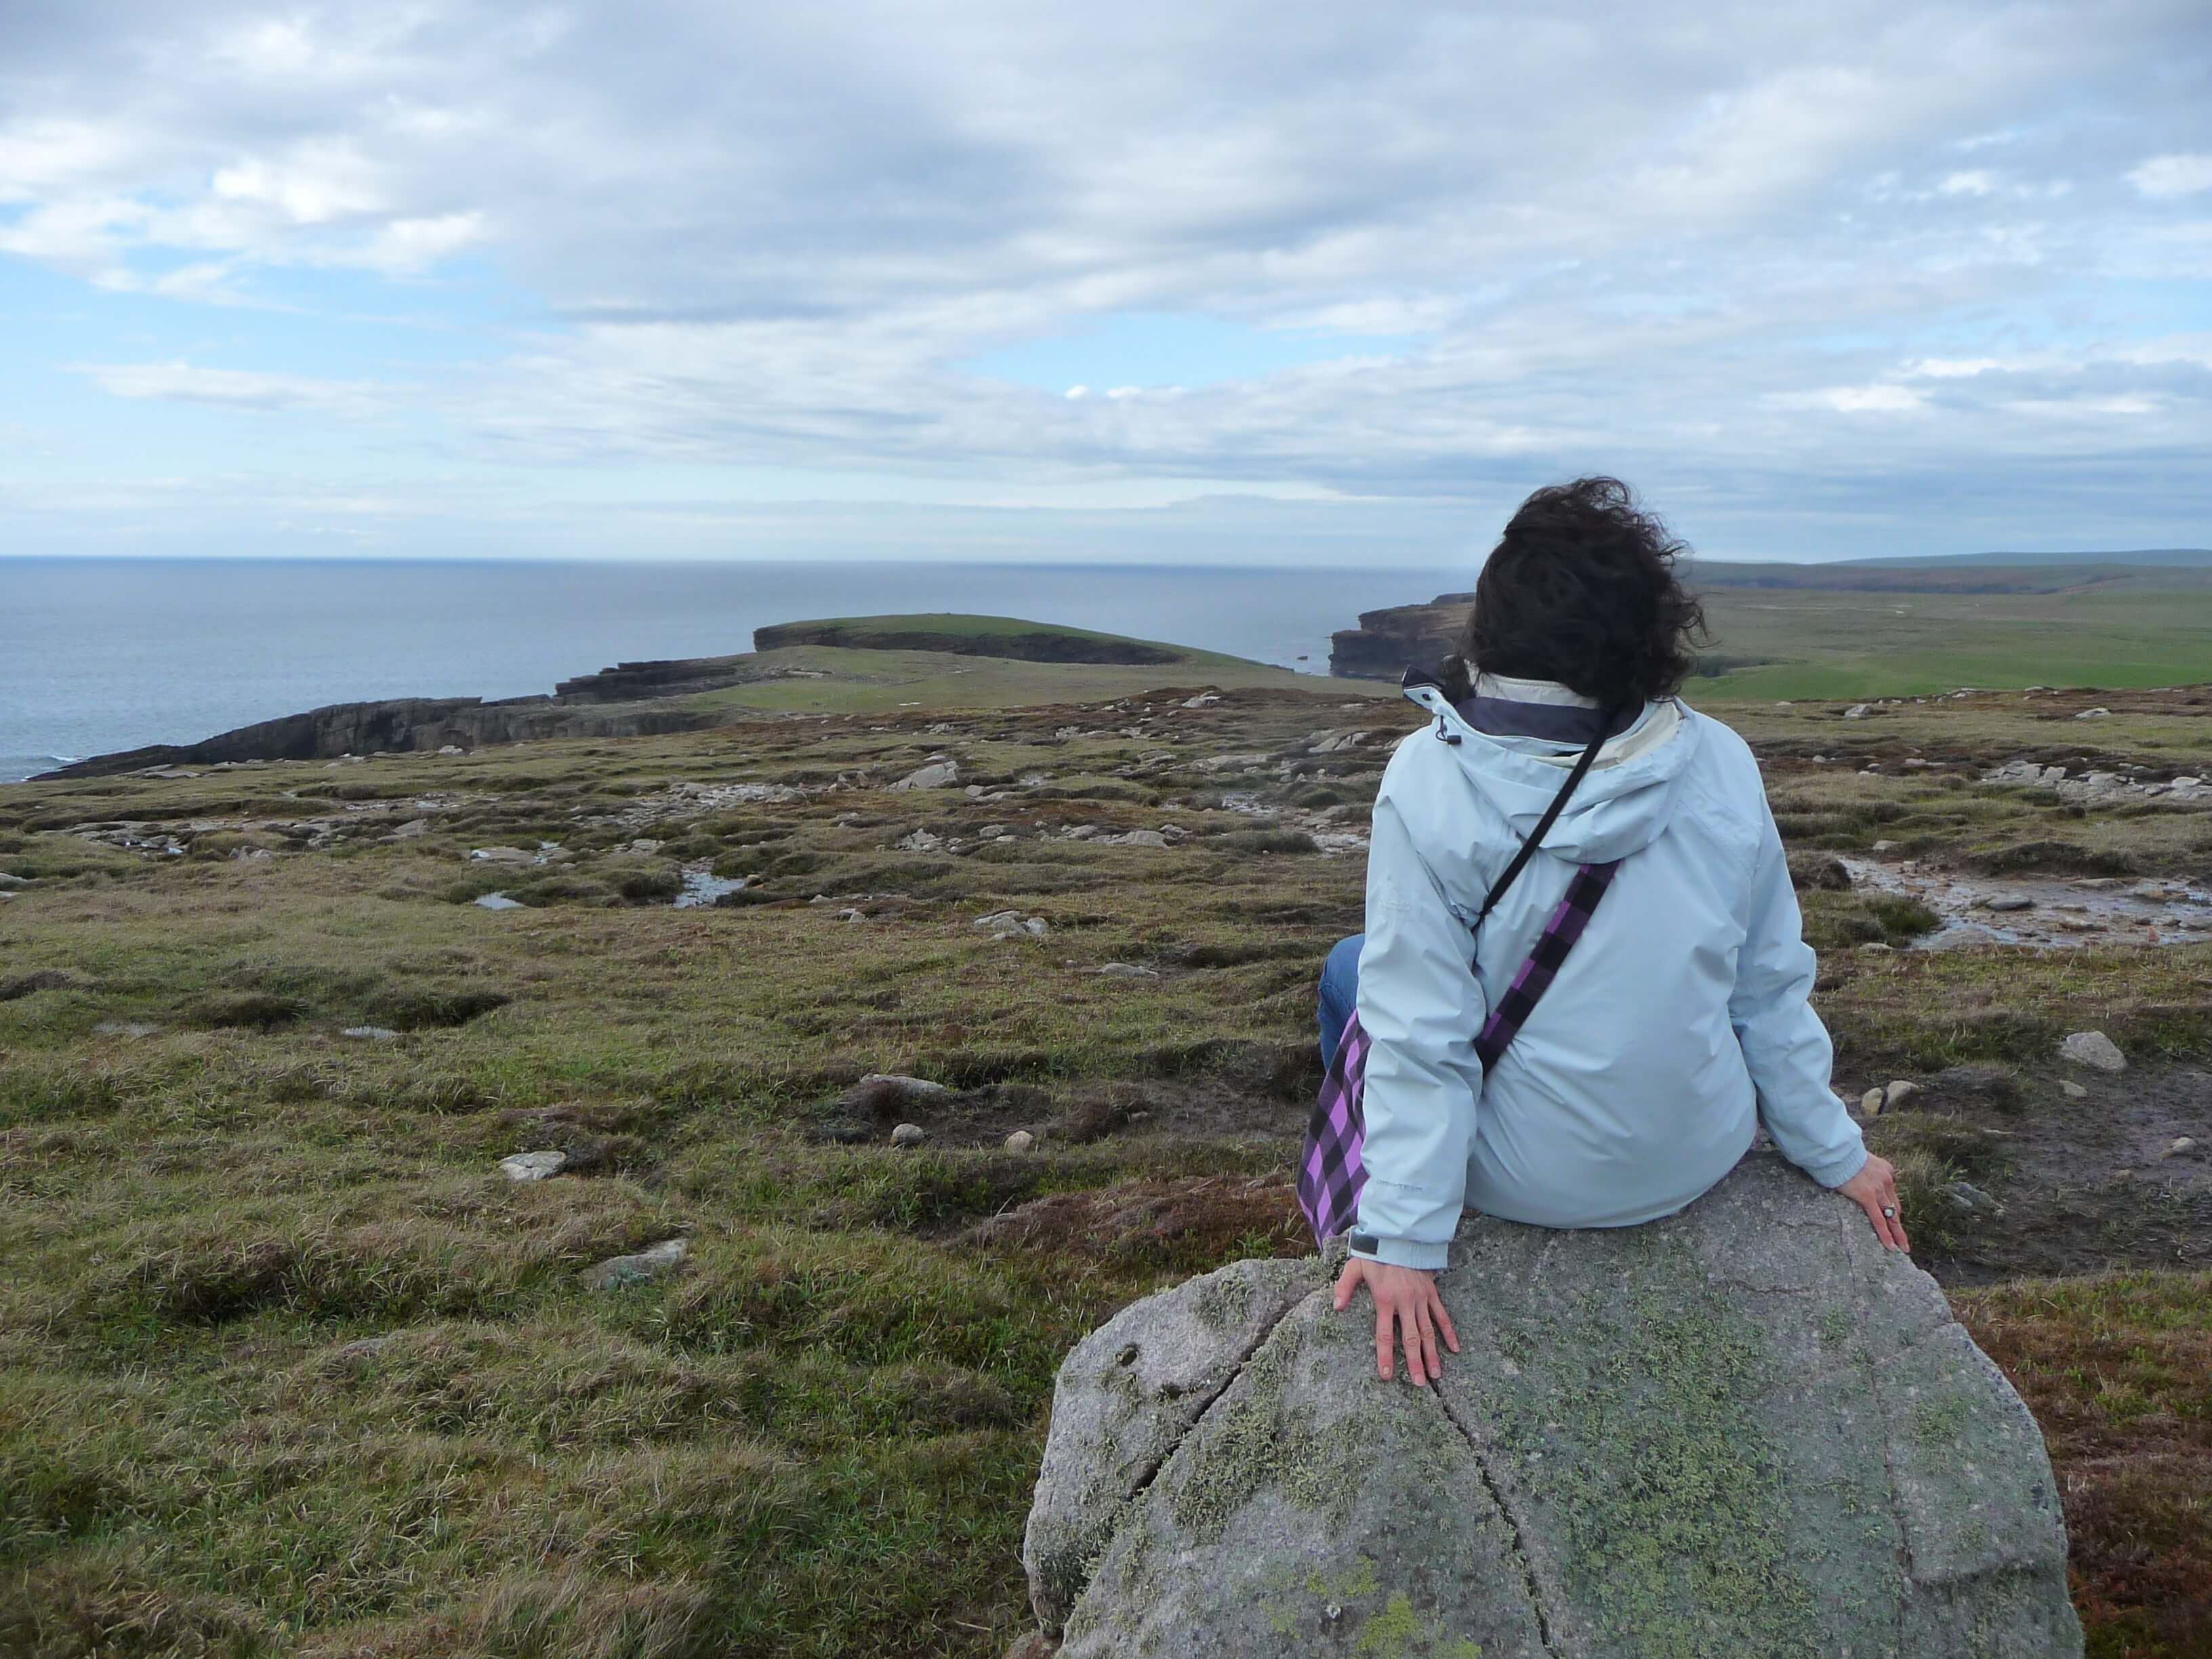 www.Orkneyology.com - American expat in Scotland's Orkney Islands, Rhonda Muir, getting rooted in her new home in Orkney